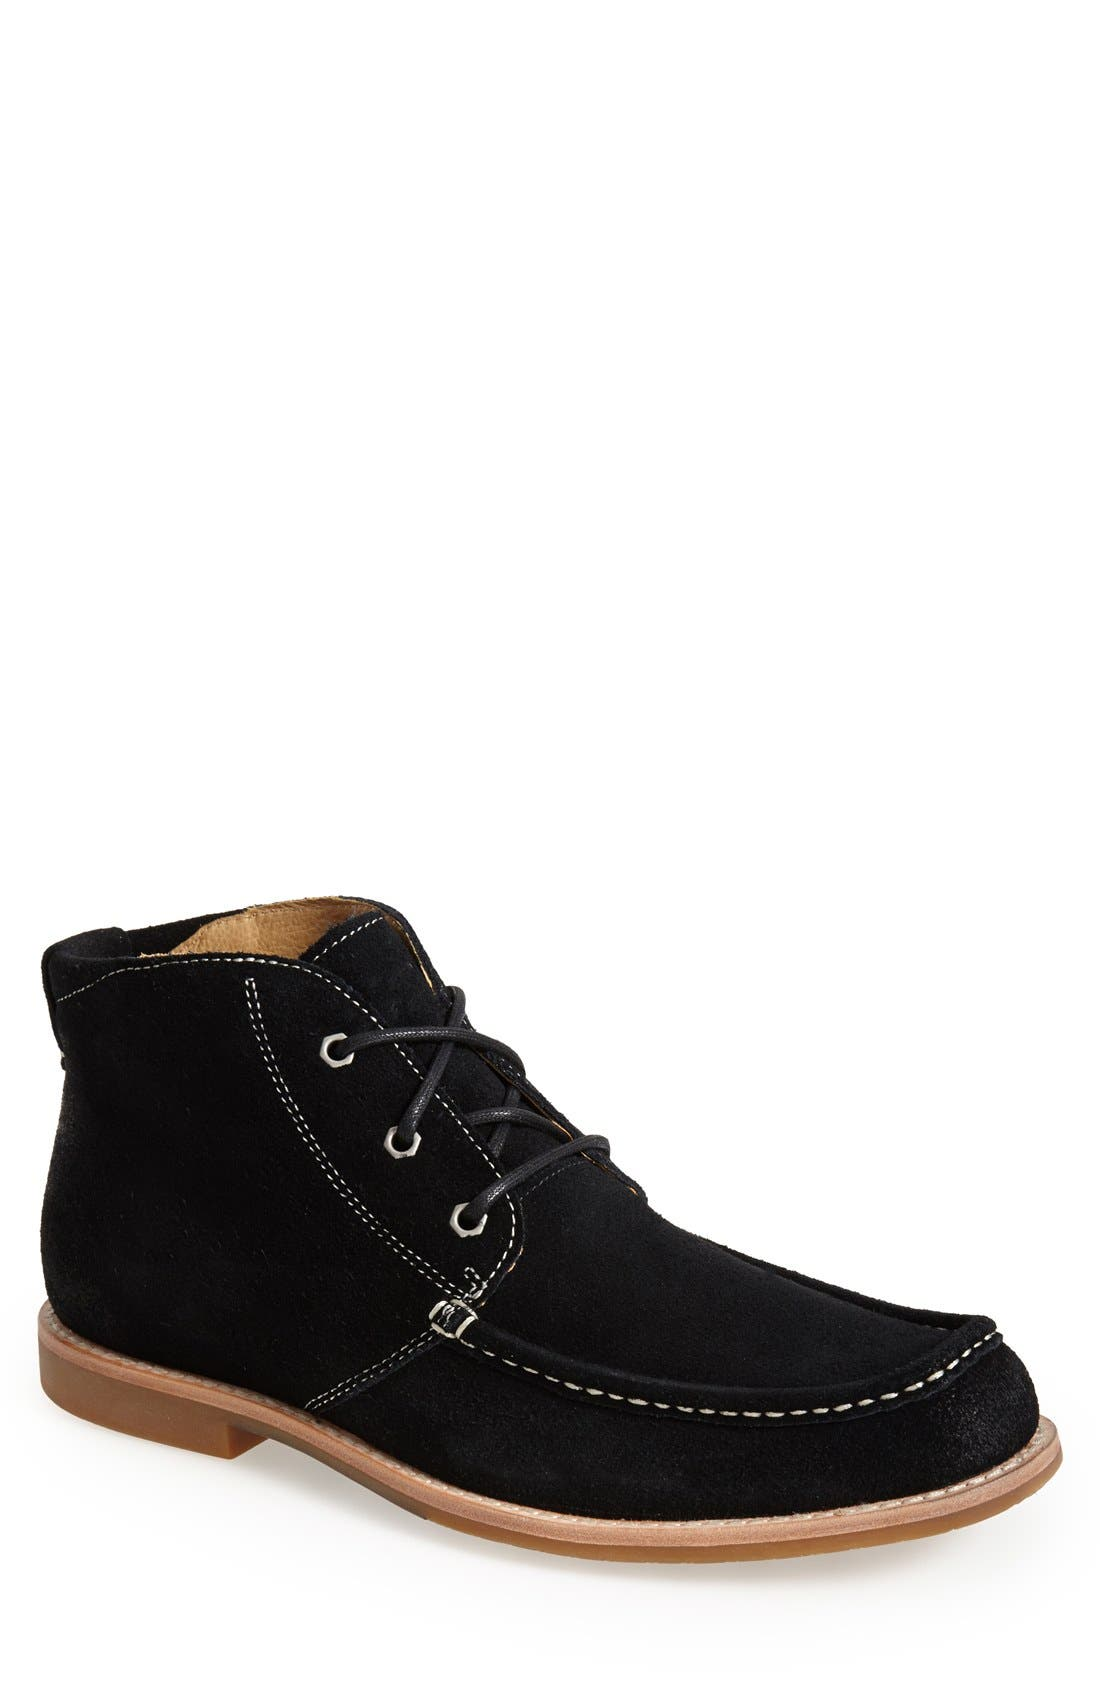 Alternate Image 1 Selected - UGG® 'Via Lungarno' Chukka Boot